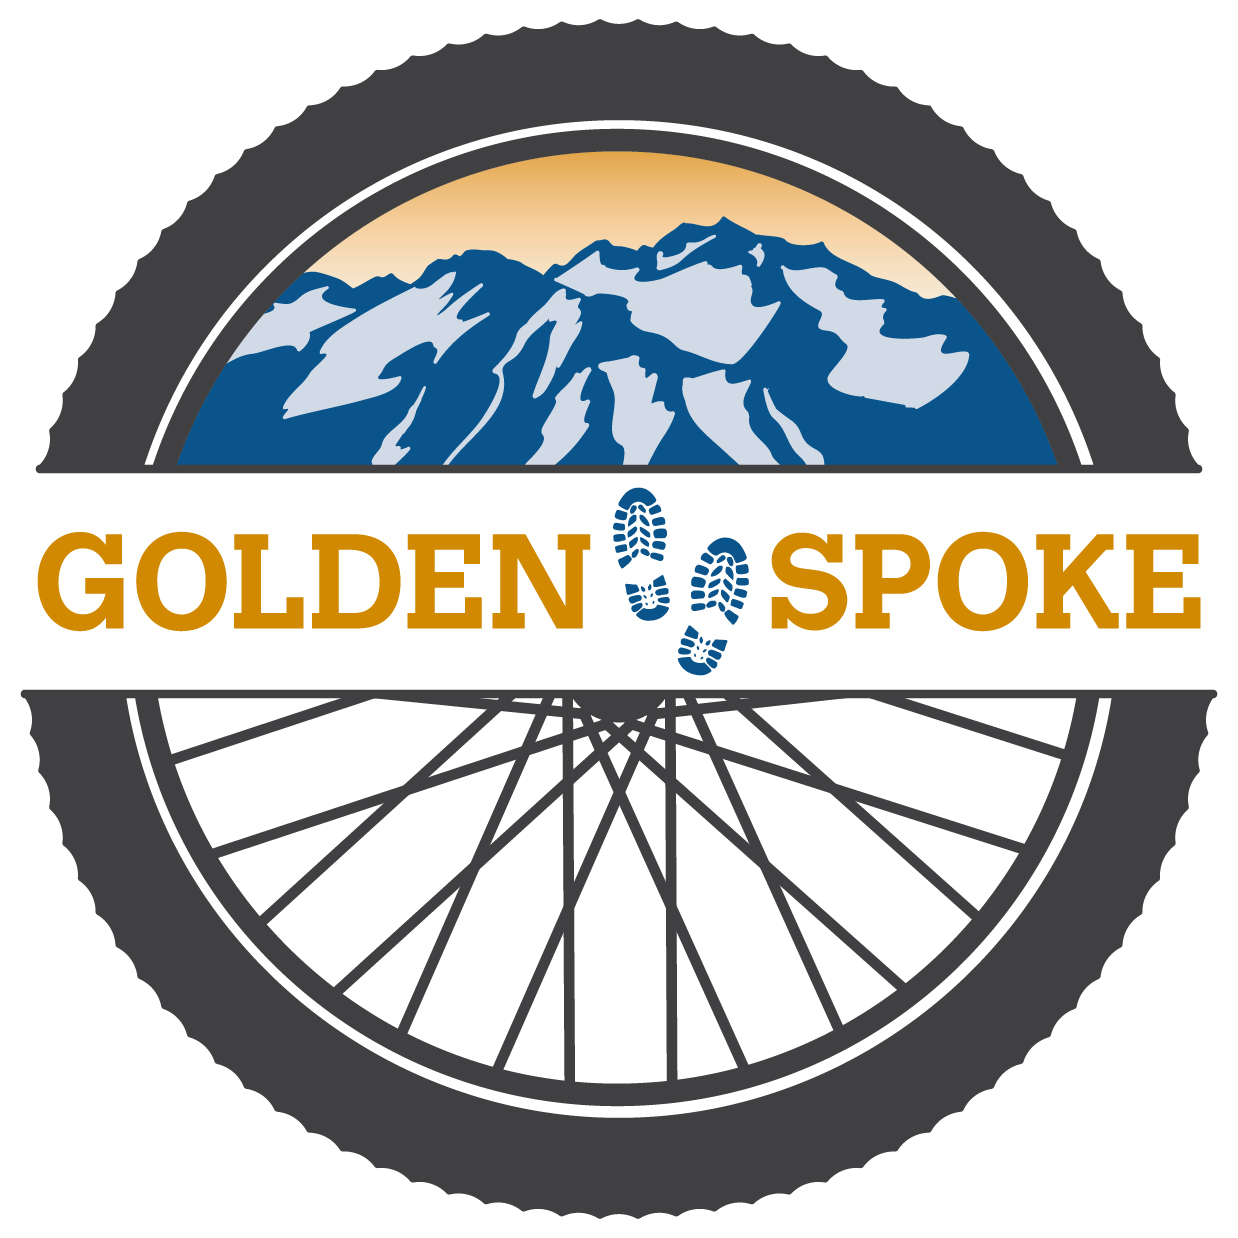 Golden Spoke logo.